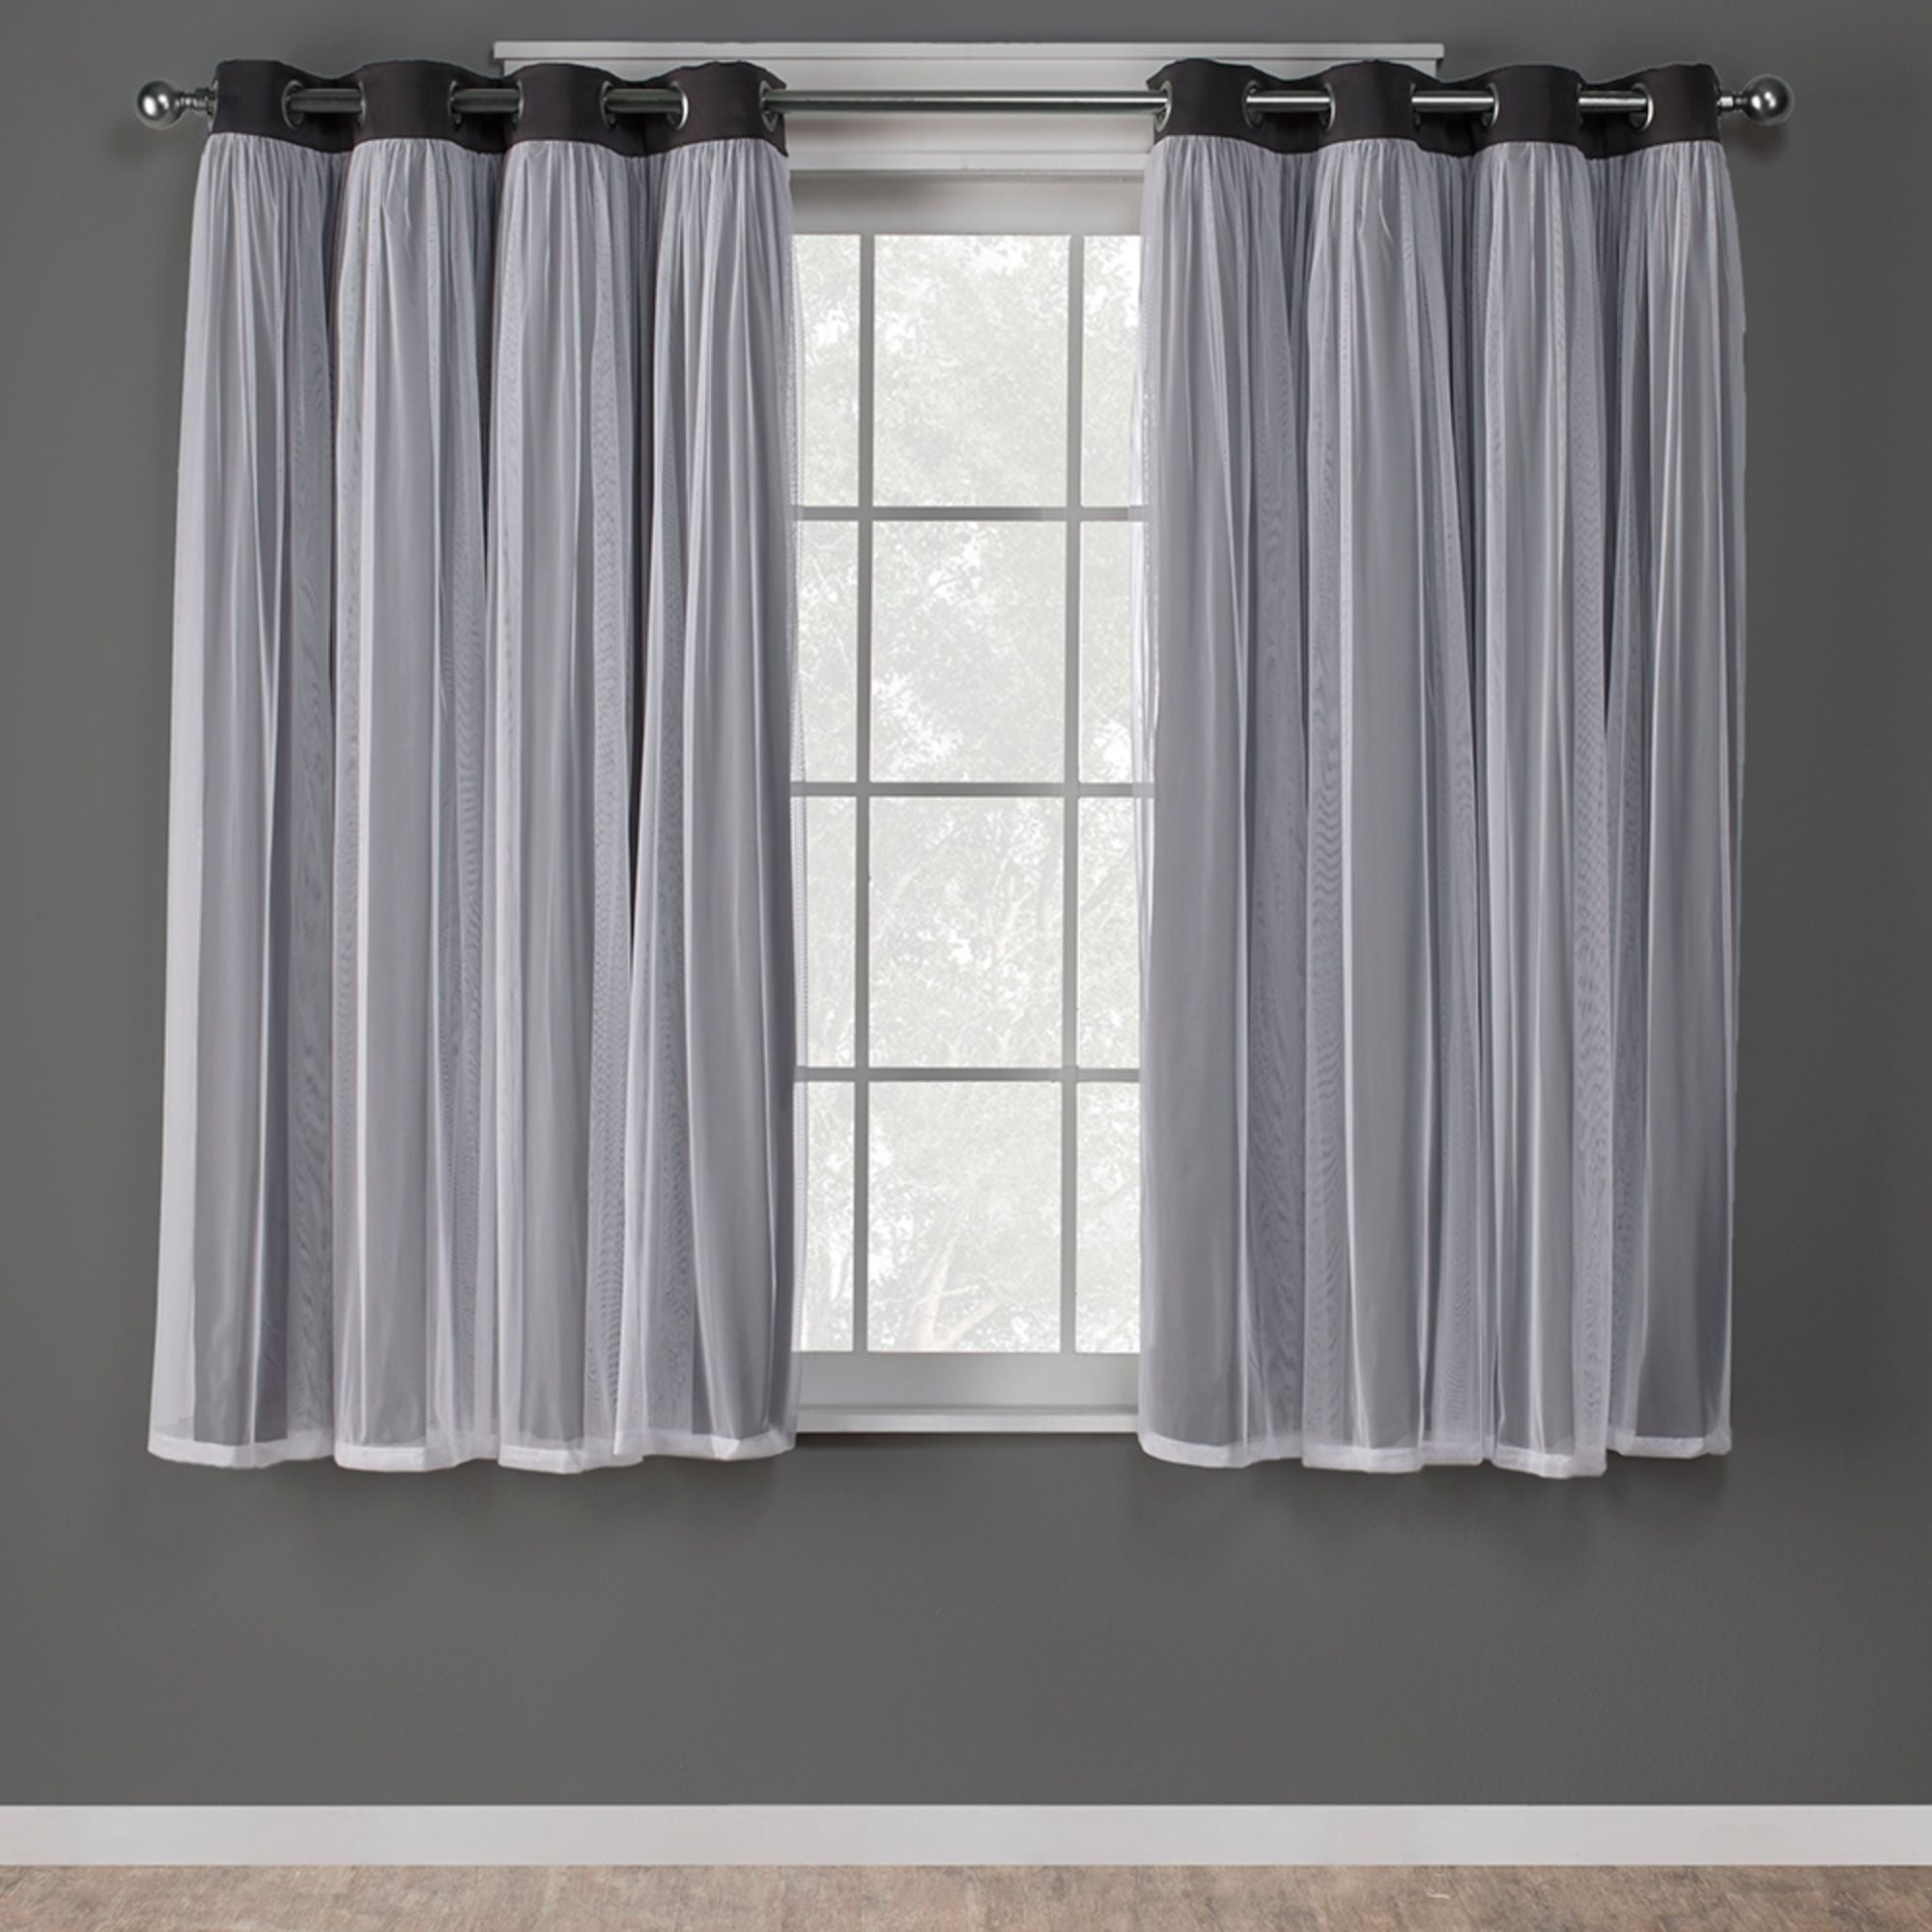 Featured Photo of Catarina Layered Curtain Panel Pairs With Grommet Top